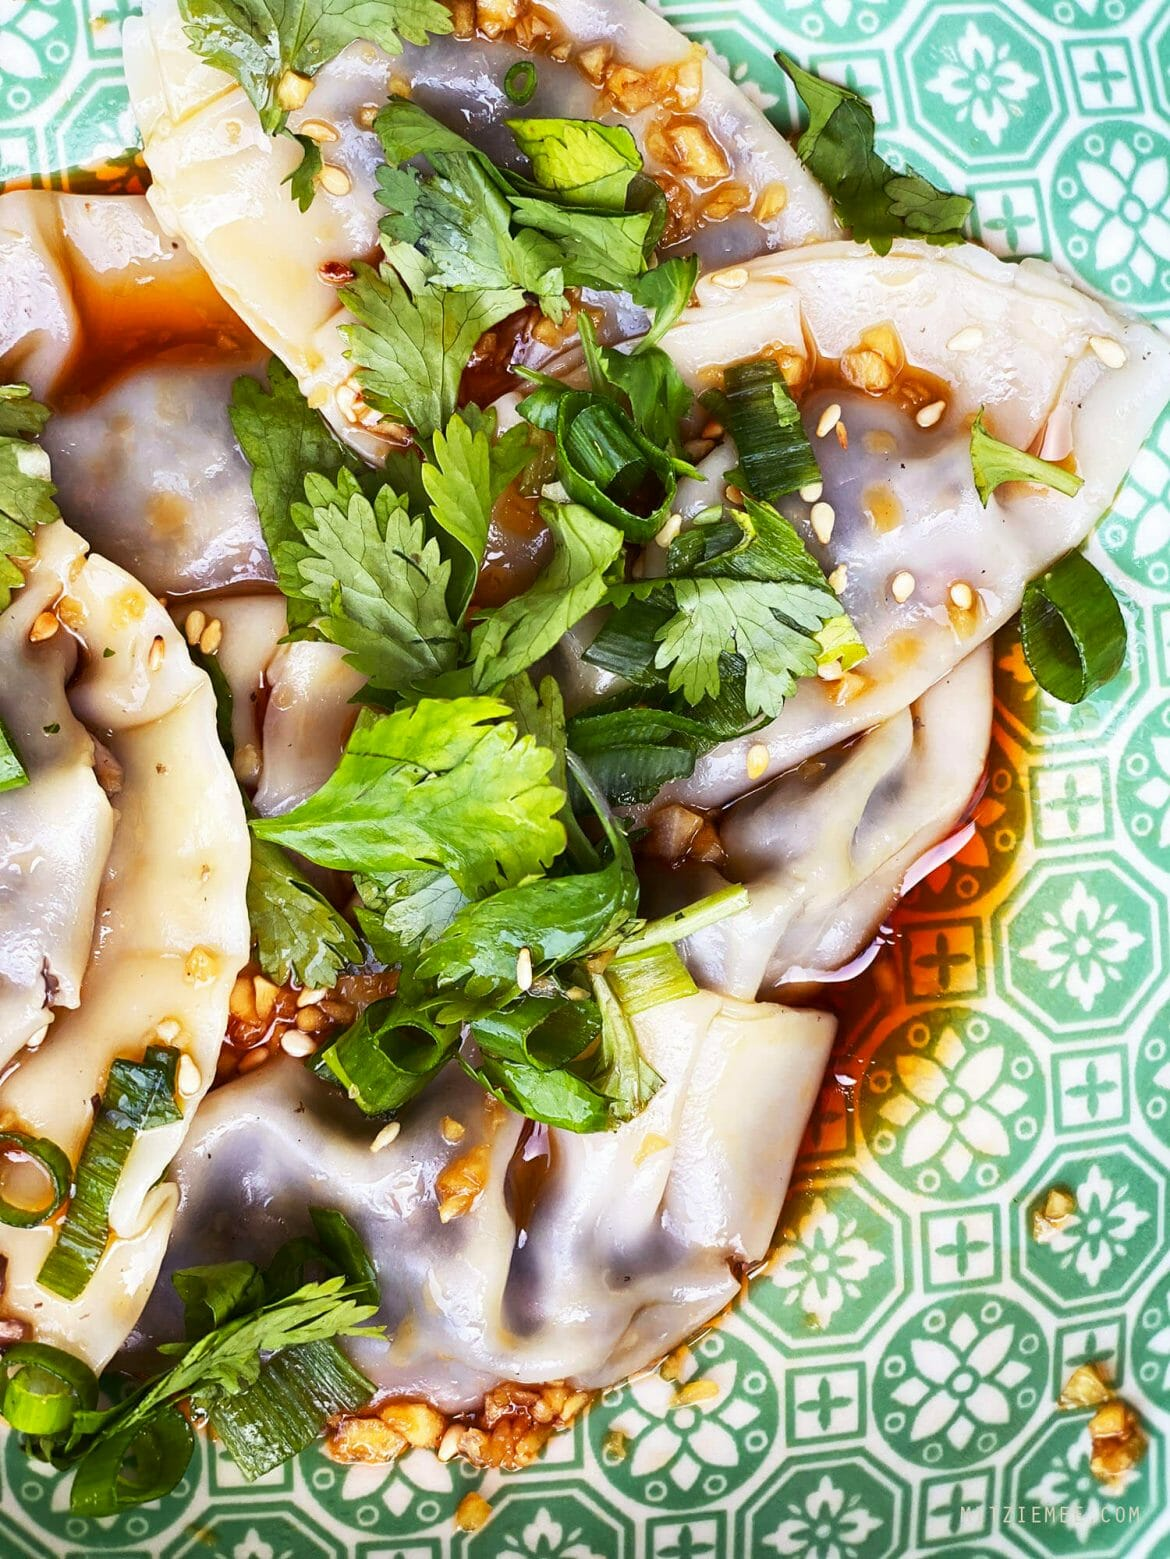 Dumplings in spisy sauce, Recipe